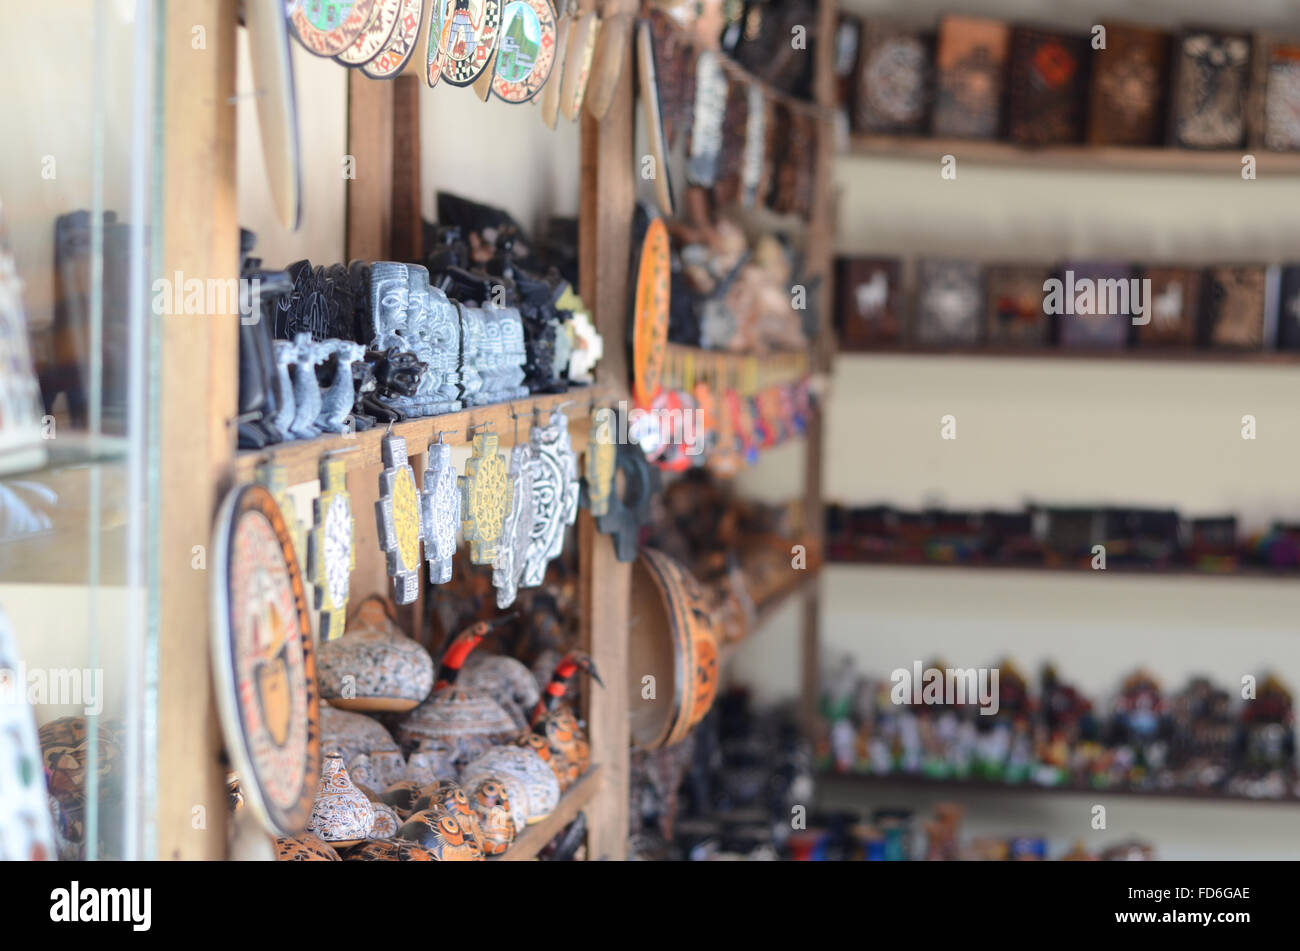 Showpieces For Sale At A Store - Stock Image